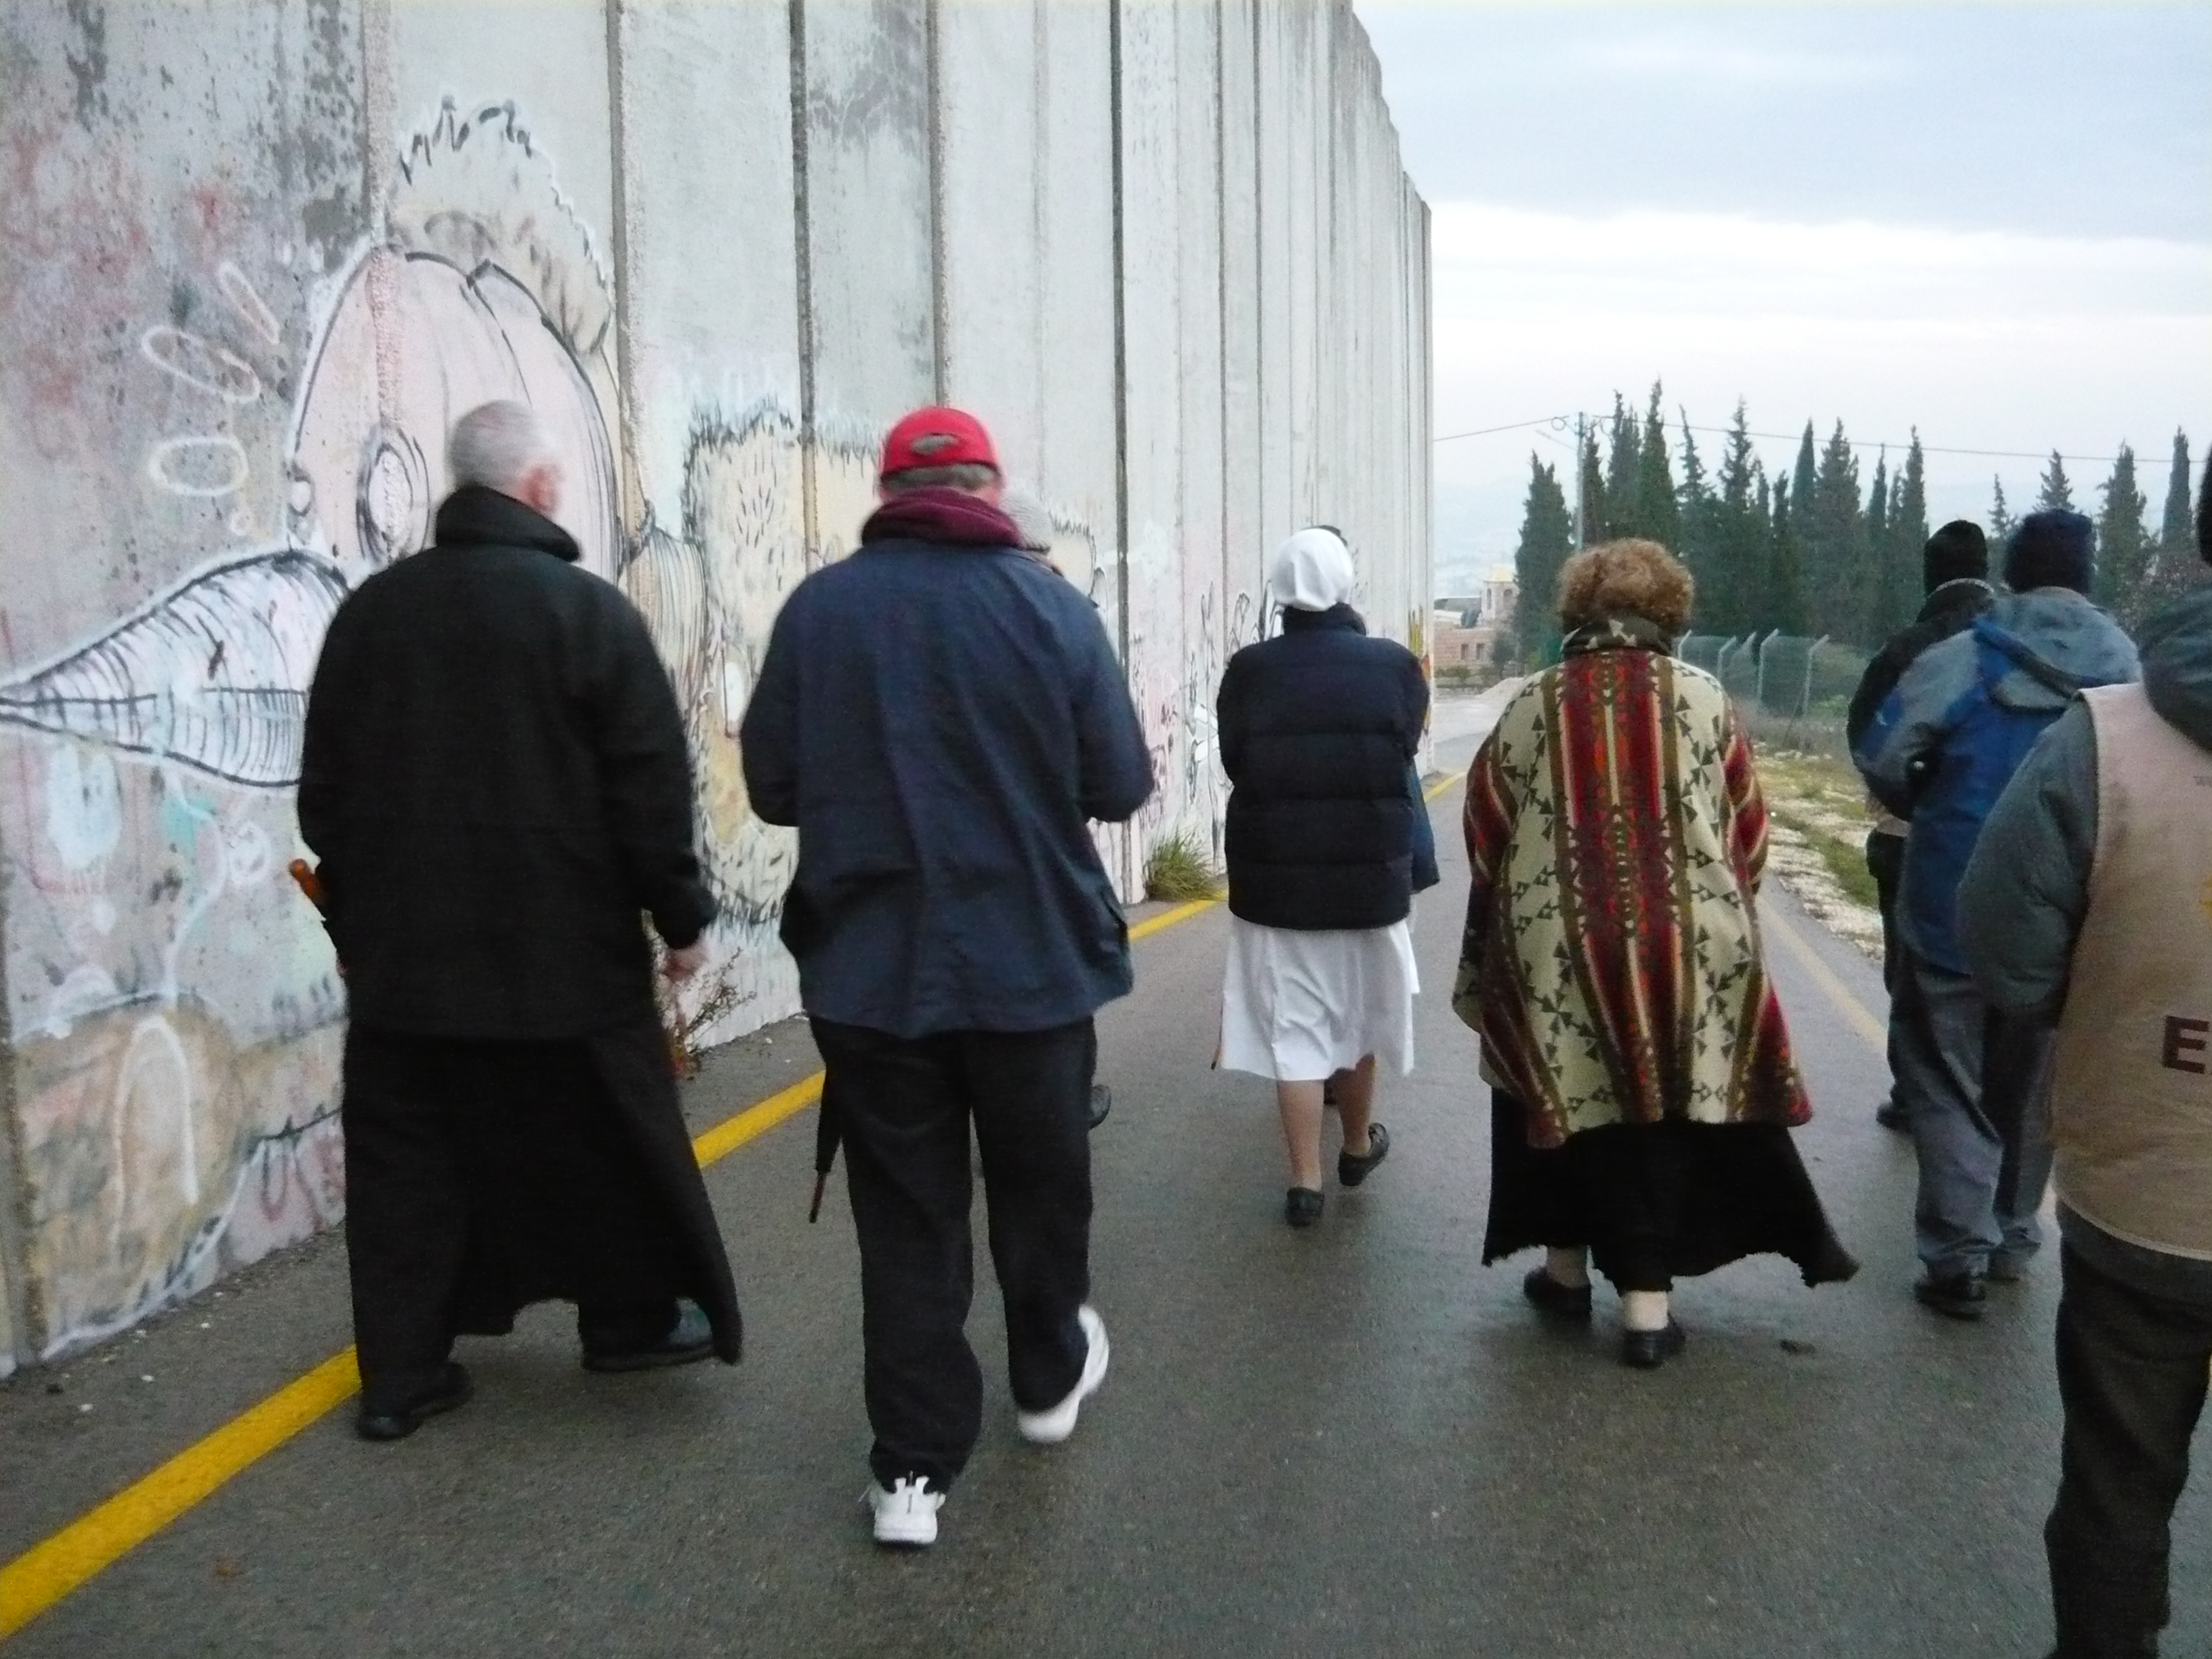 People of faith walking alongside the Separation Barrier